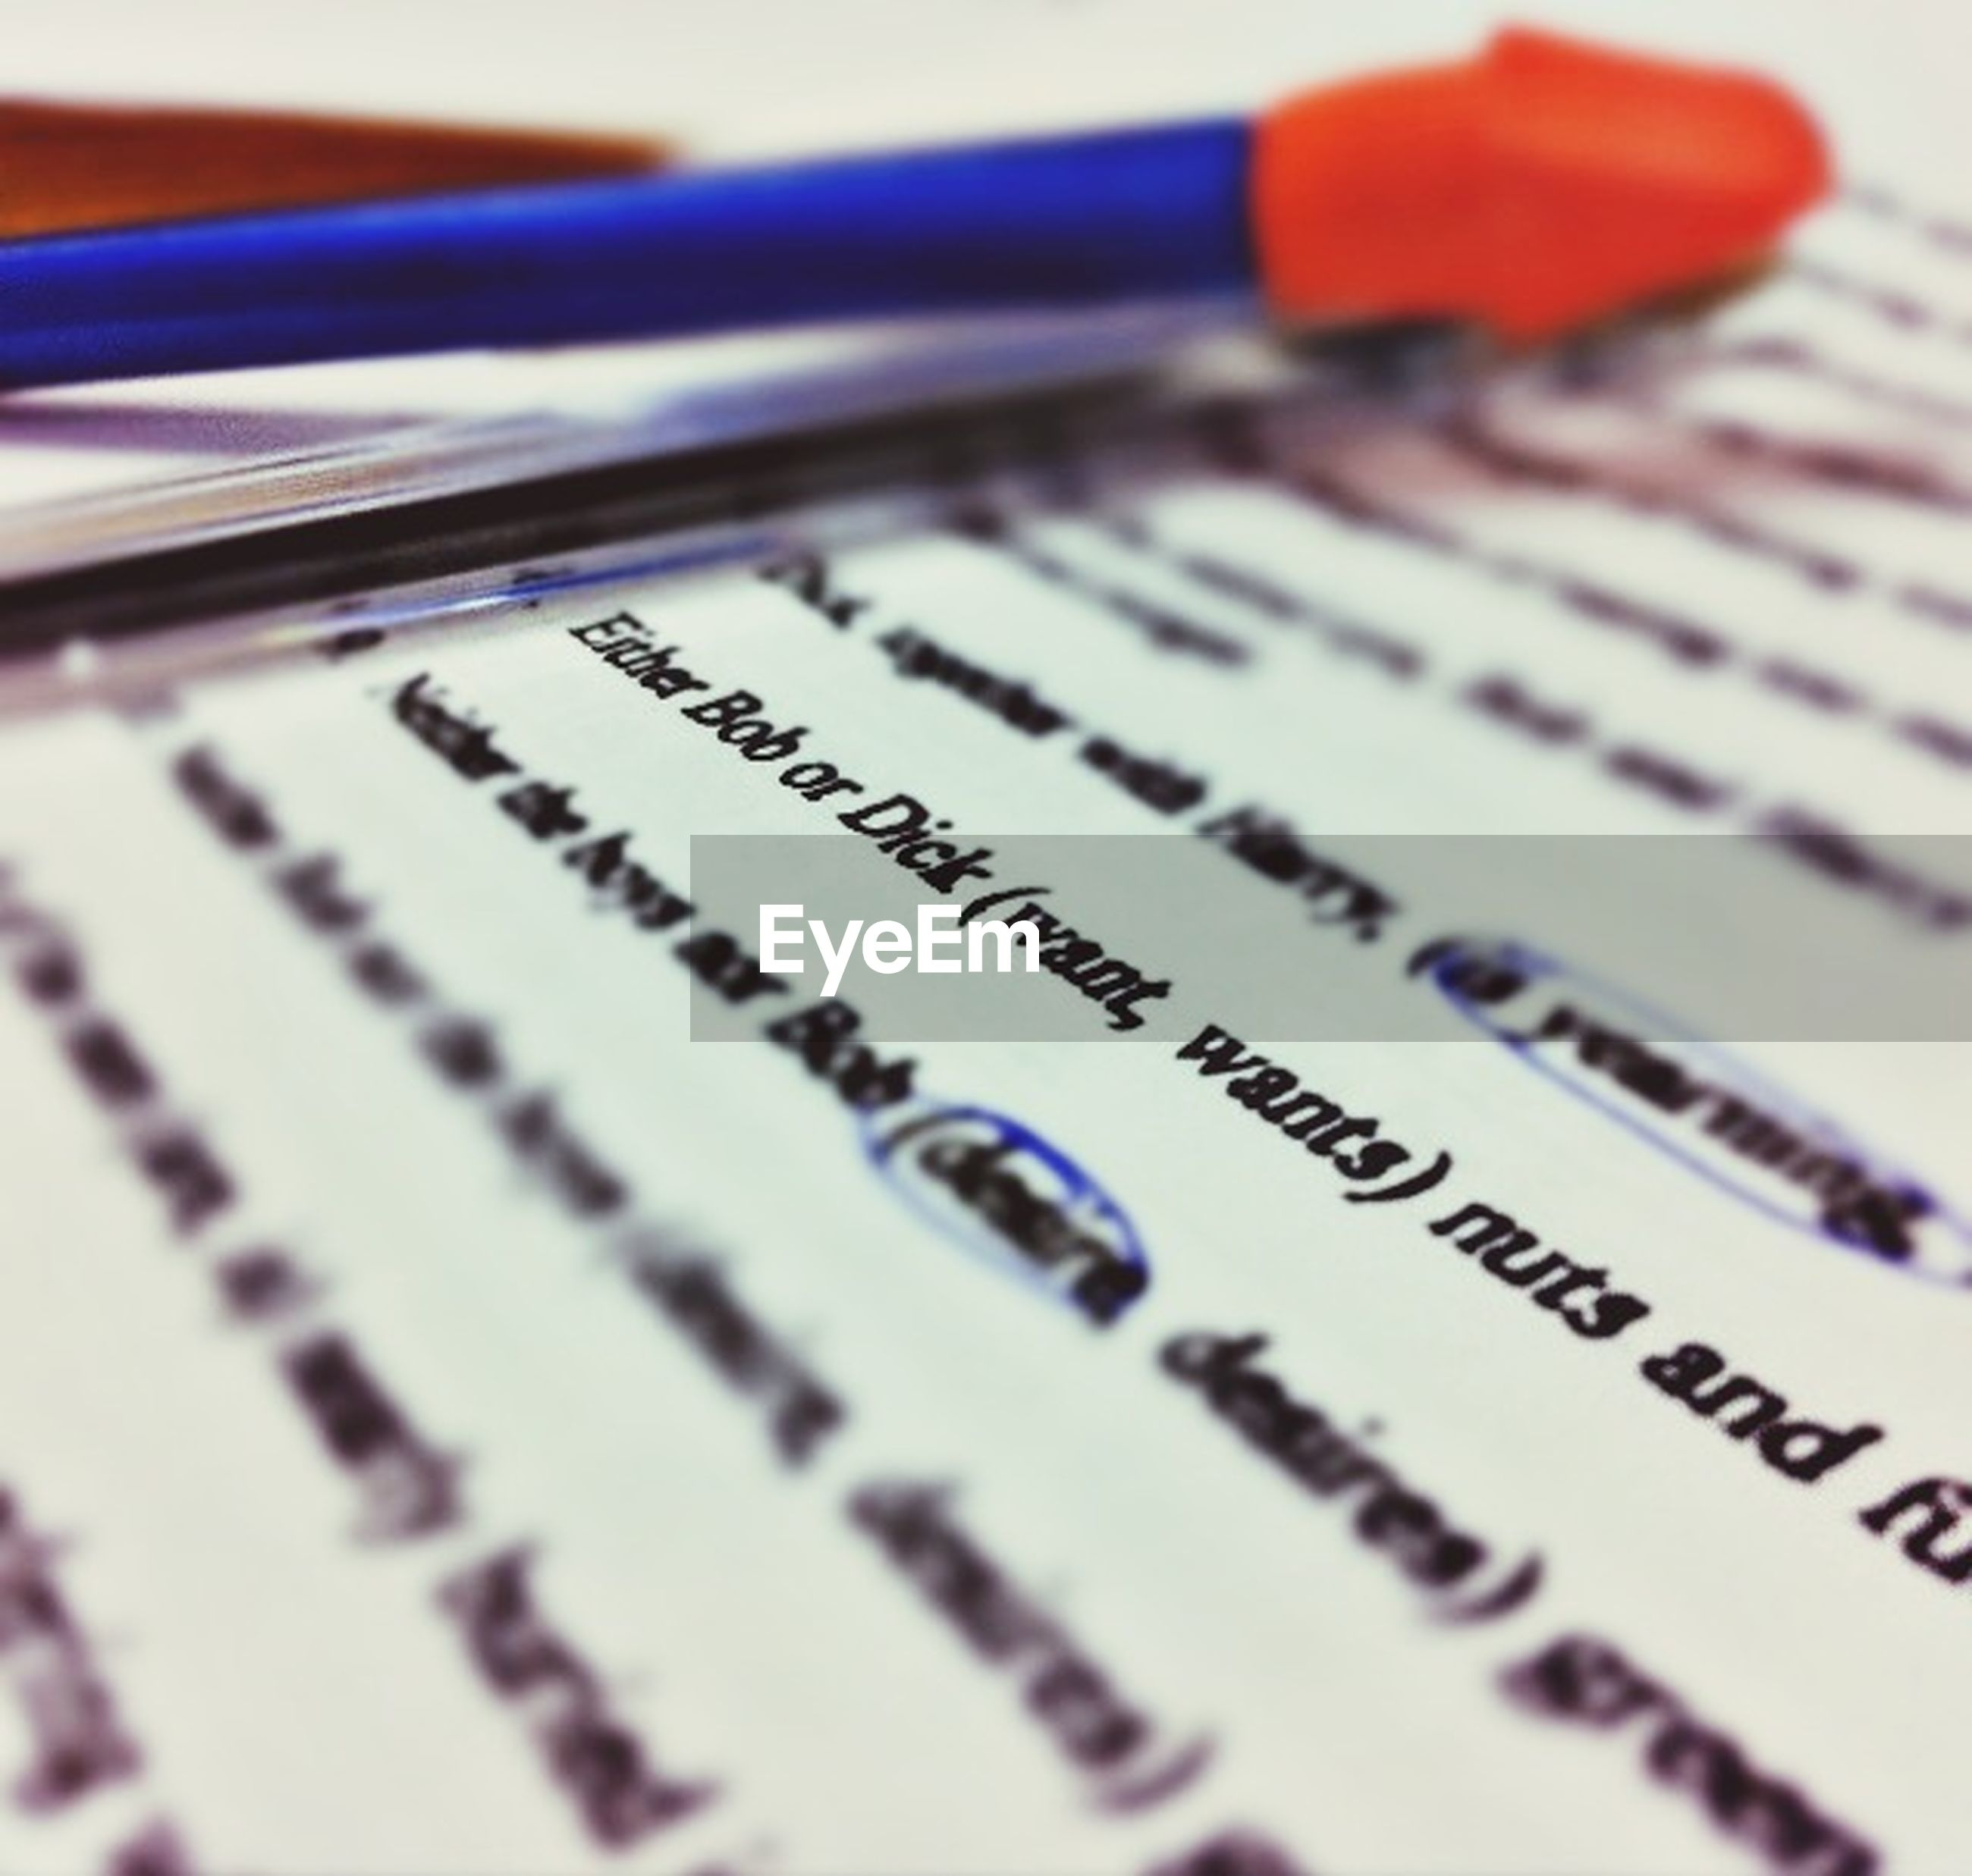 indoors, close-up, text, education, book, selective focus, still life, communication, paper, music, western script, pencil, pen, in a row, large group of objects, variation, page, learning, literature, table